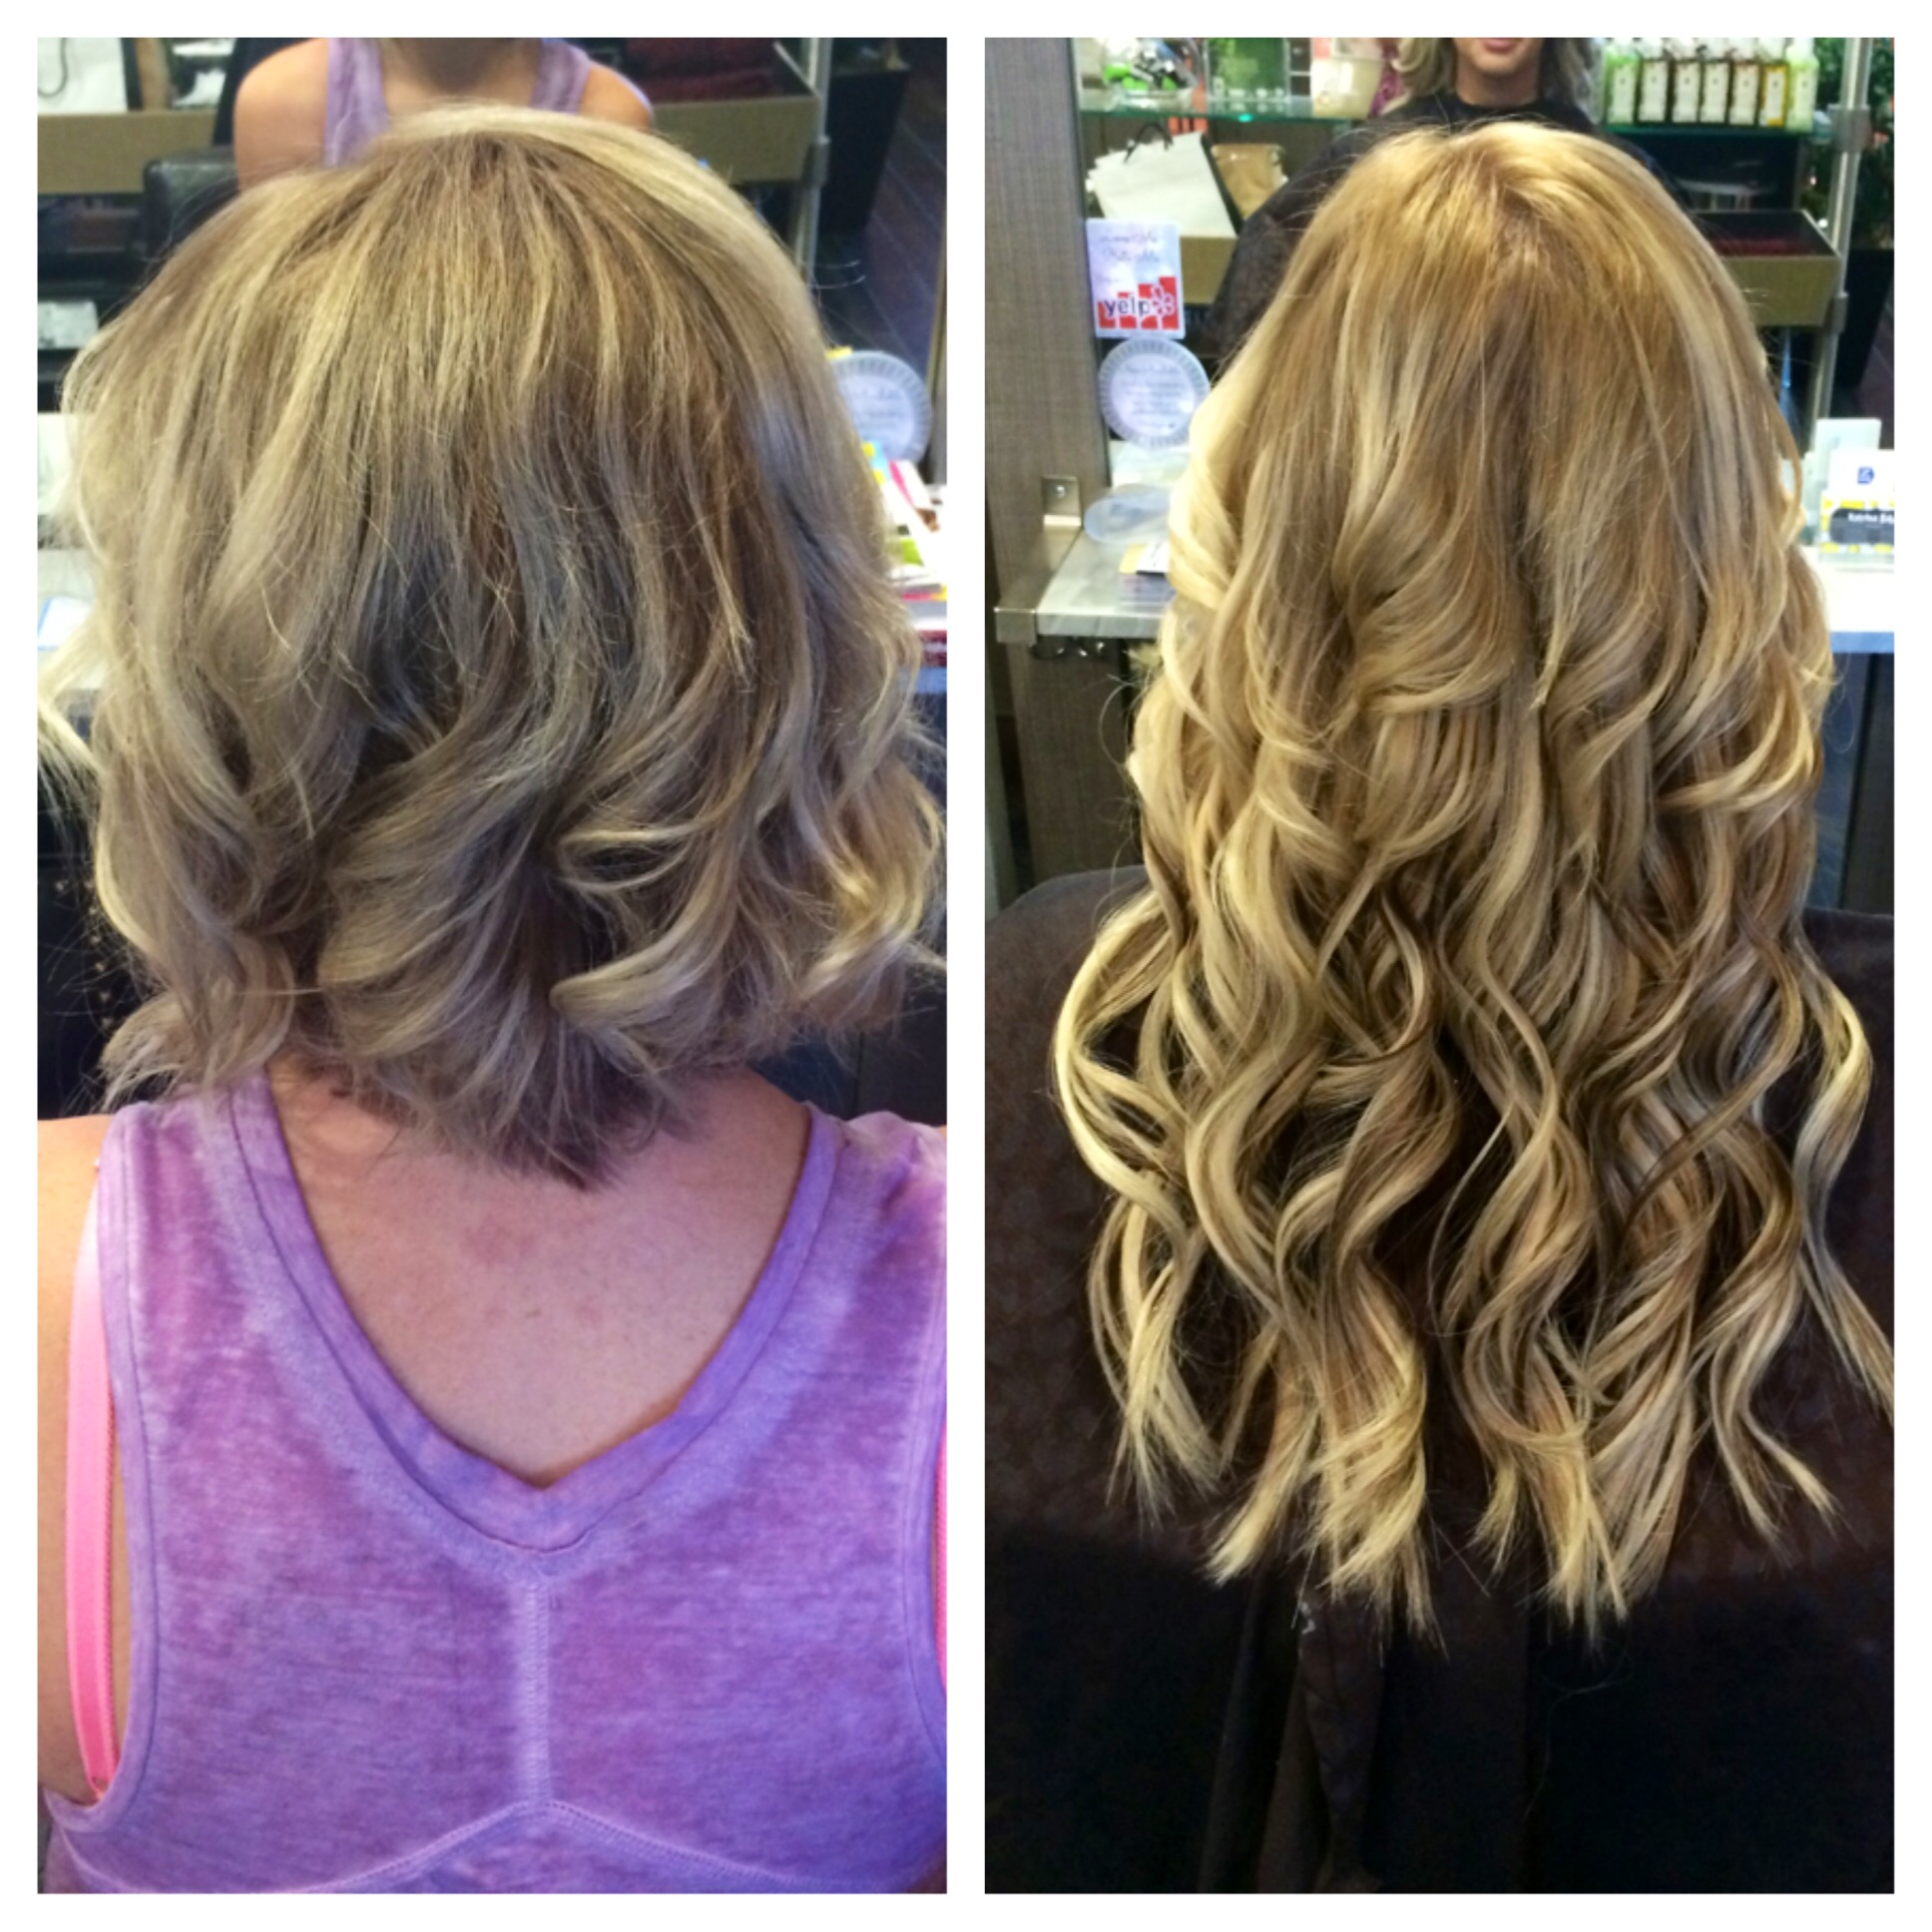 Hair extensions weave in tustin orange county ca hair extensions 33 extensions pmusecretfo Image collections